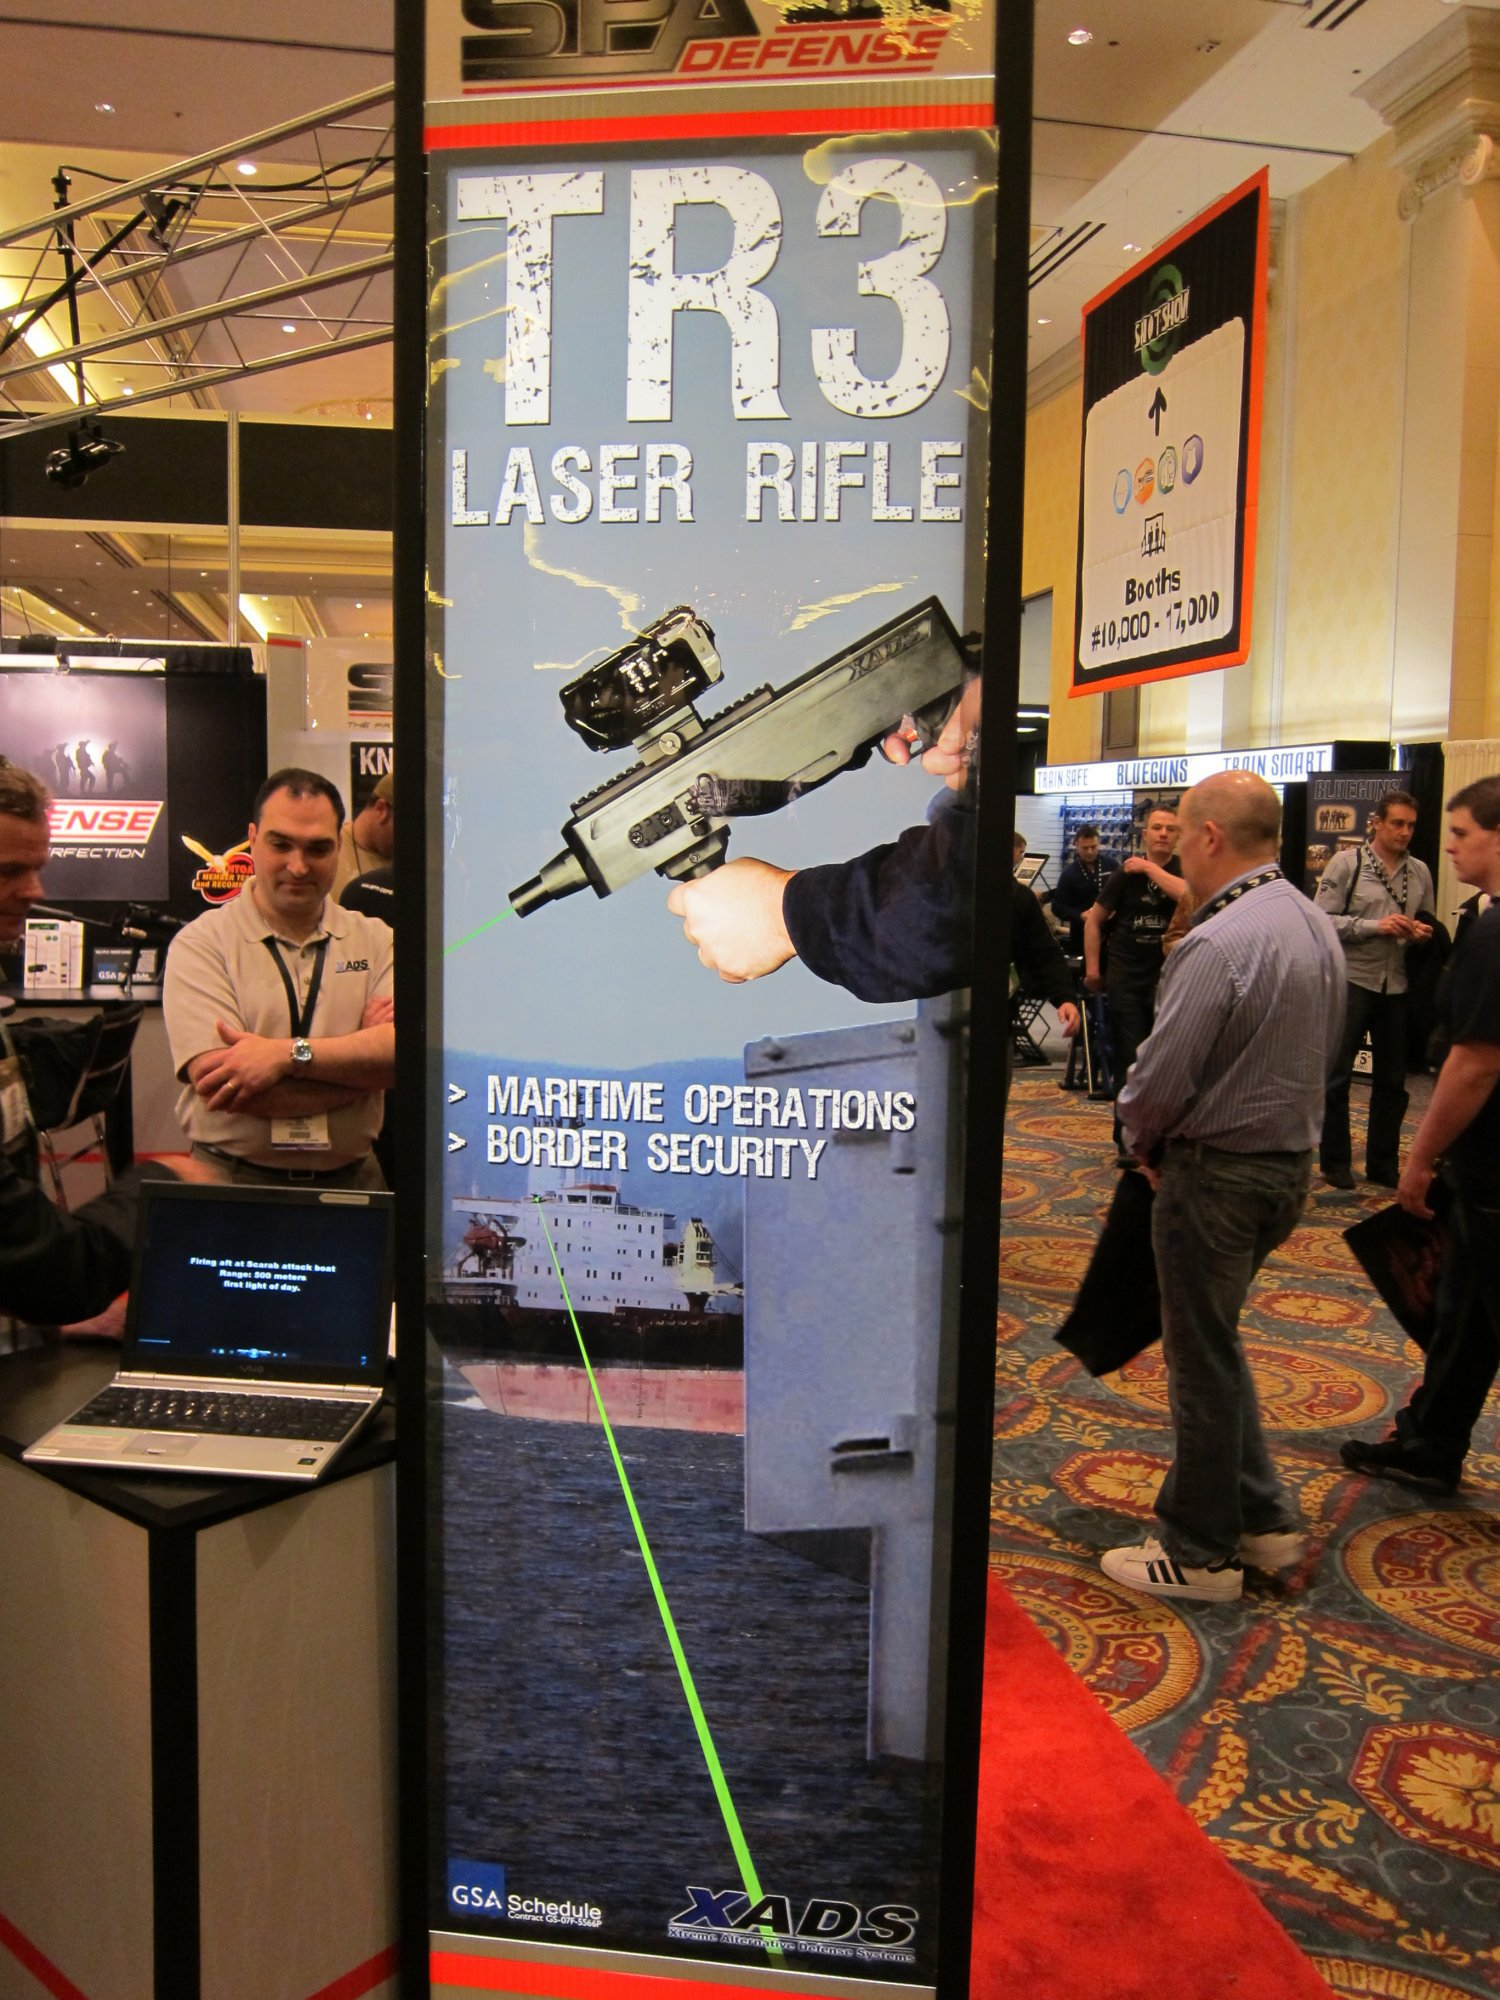 XADS TR3 Laser Rifle for Ship Defense 15 <!  :en  >SPA Defense/XADS TR3 Laser Rifle for Ship Defense/Anti Piracy Operations: Hit em with the Big Green Laser Beam!<!  :  >